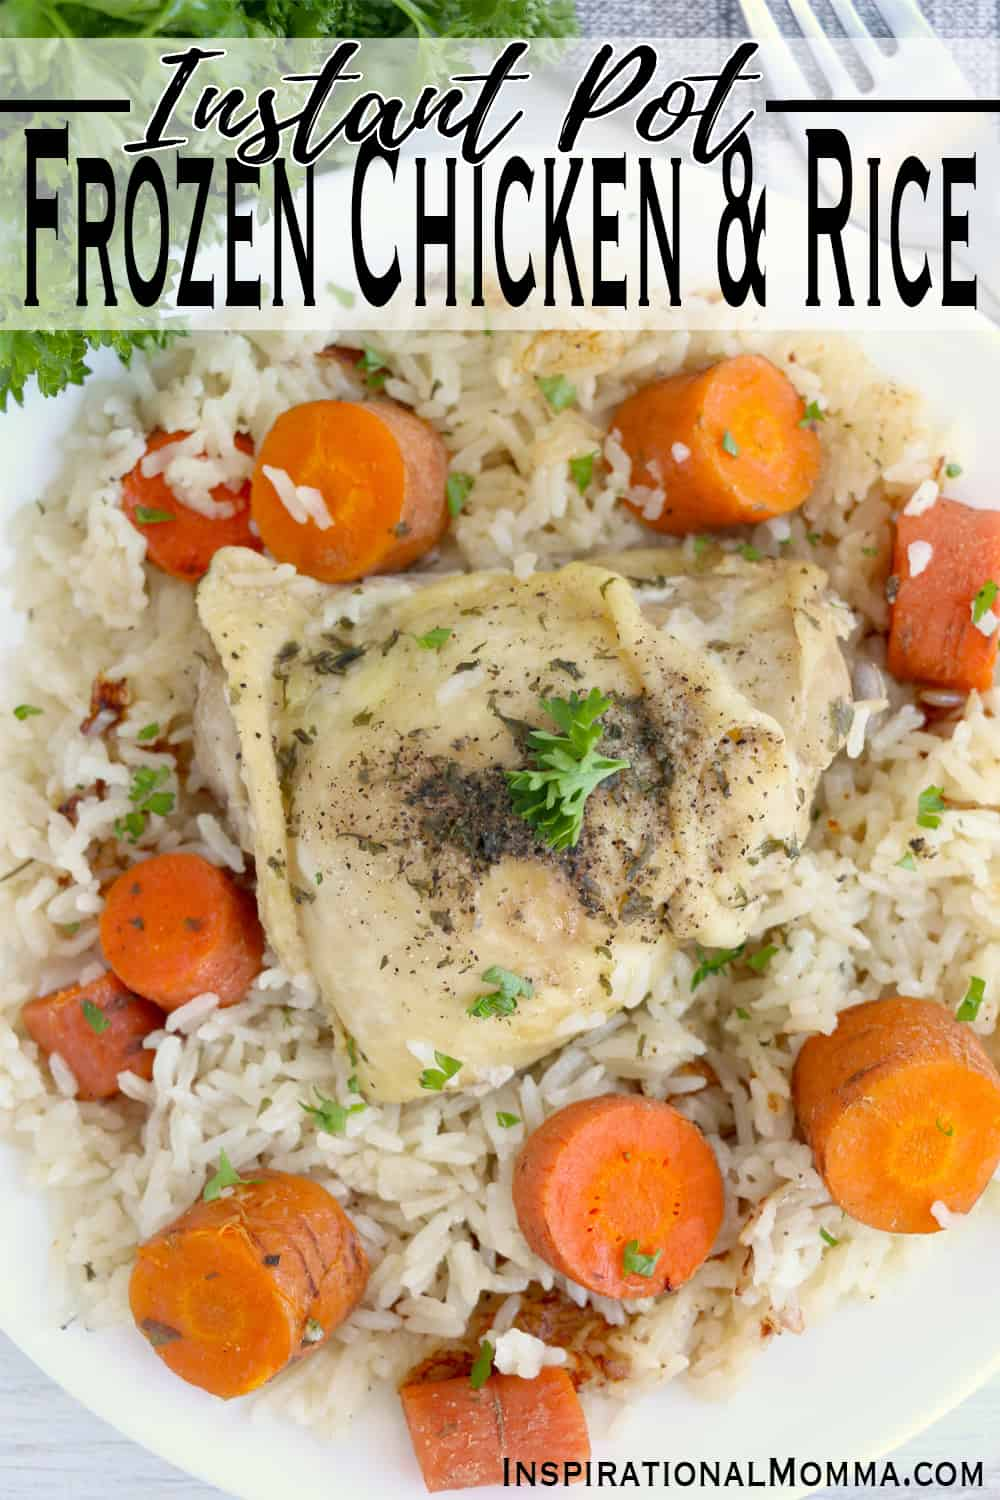 Instant Pot Frozen Chicken and Rice is a perfect dinner when you are short on time. A meal made in less than 30 minutes and packed with flavor! #inspirationalmomma #instantpotfrozenchickenandrice #instantpotchickenandrice #chickenandrice #frozenchickendinner #instantpotrecipes #instantpotdinners